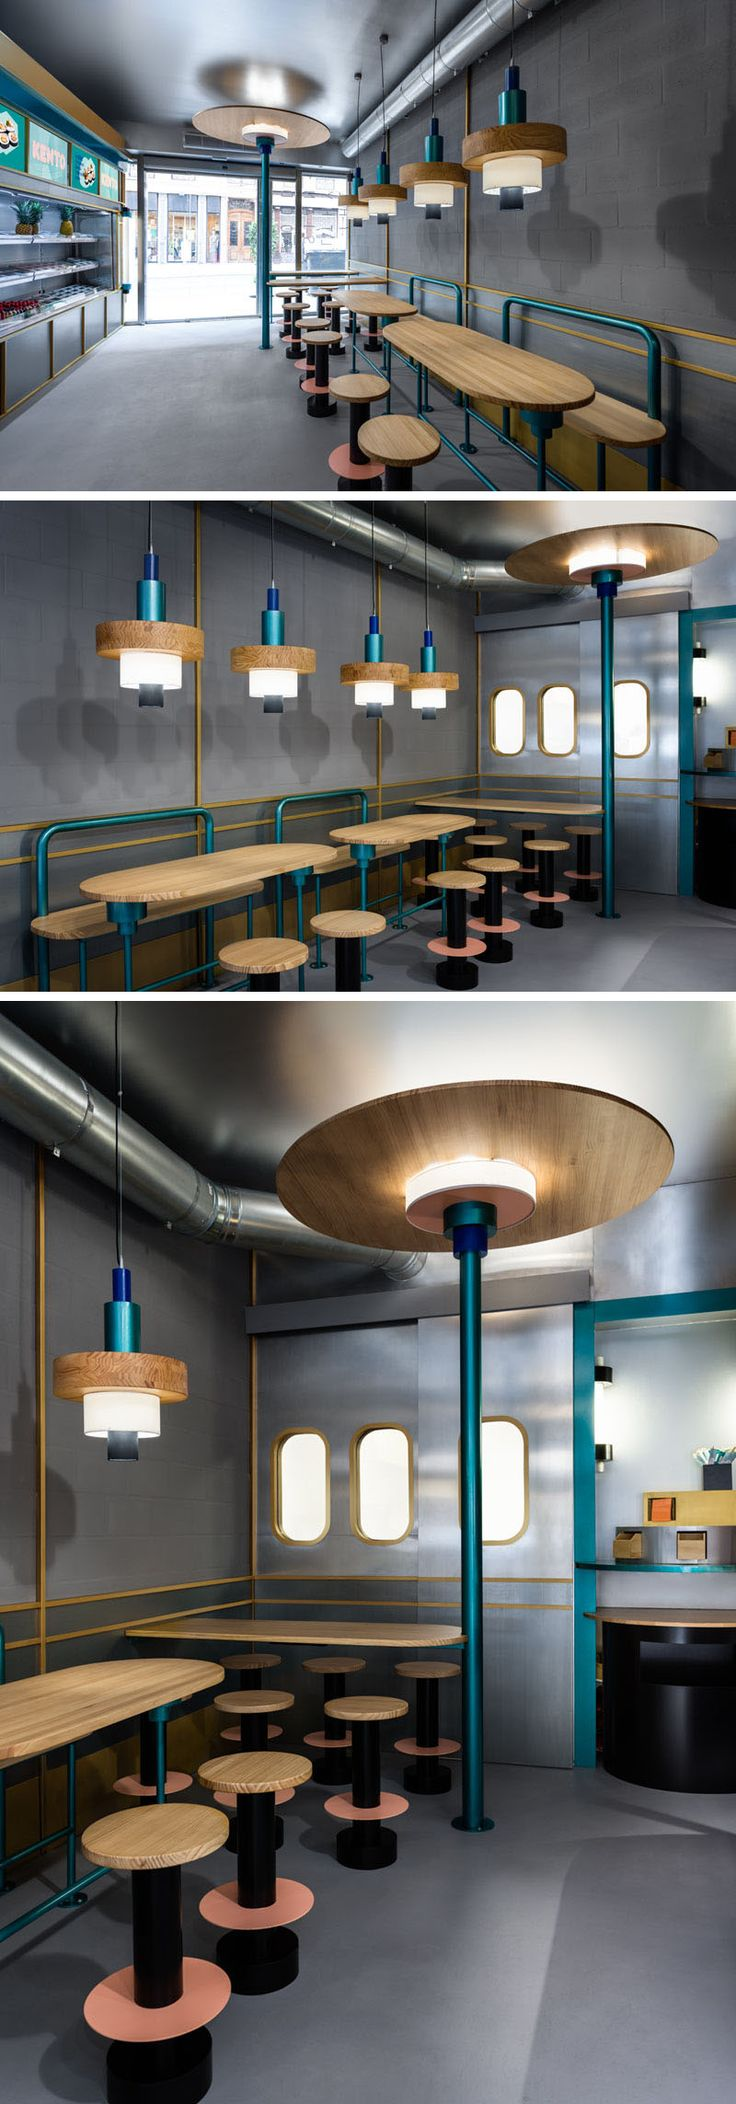 Design firm Masquespacio, has recently completed Kento, a takeaway sushi restaurant in Valencia, Spain. #ModernRestaurant #SushiRestaurant #RestaurantDesign